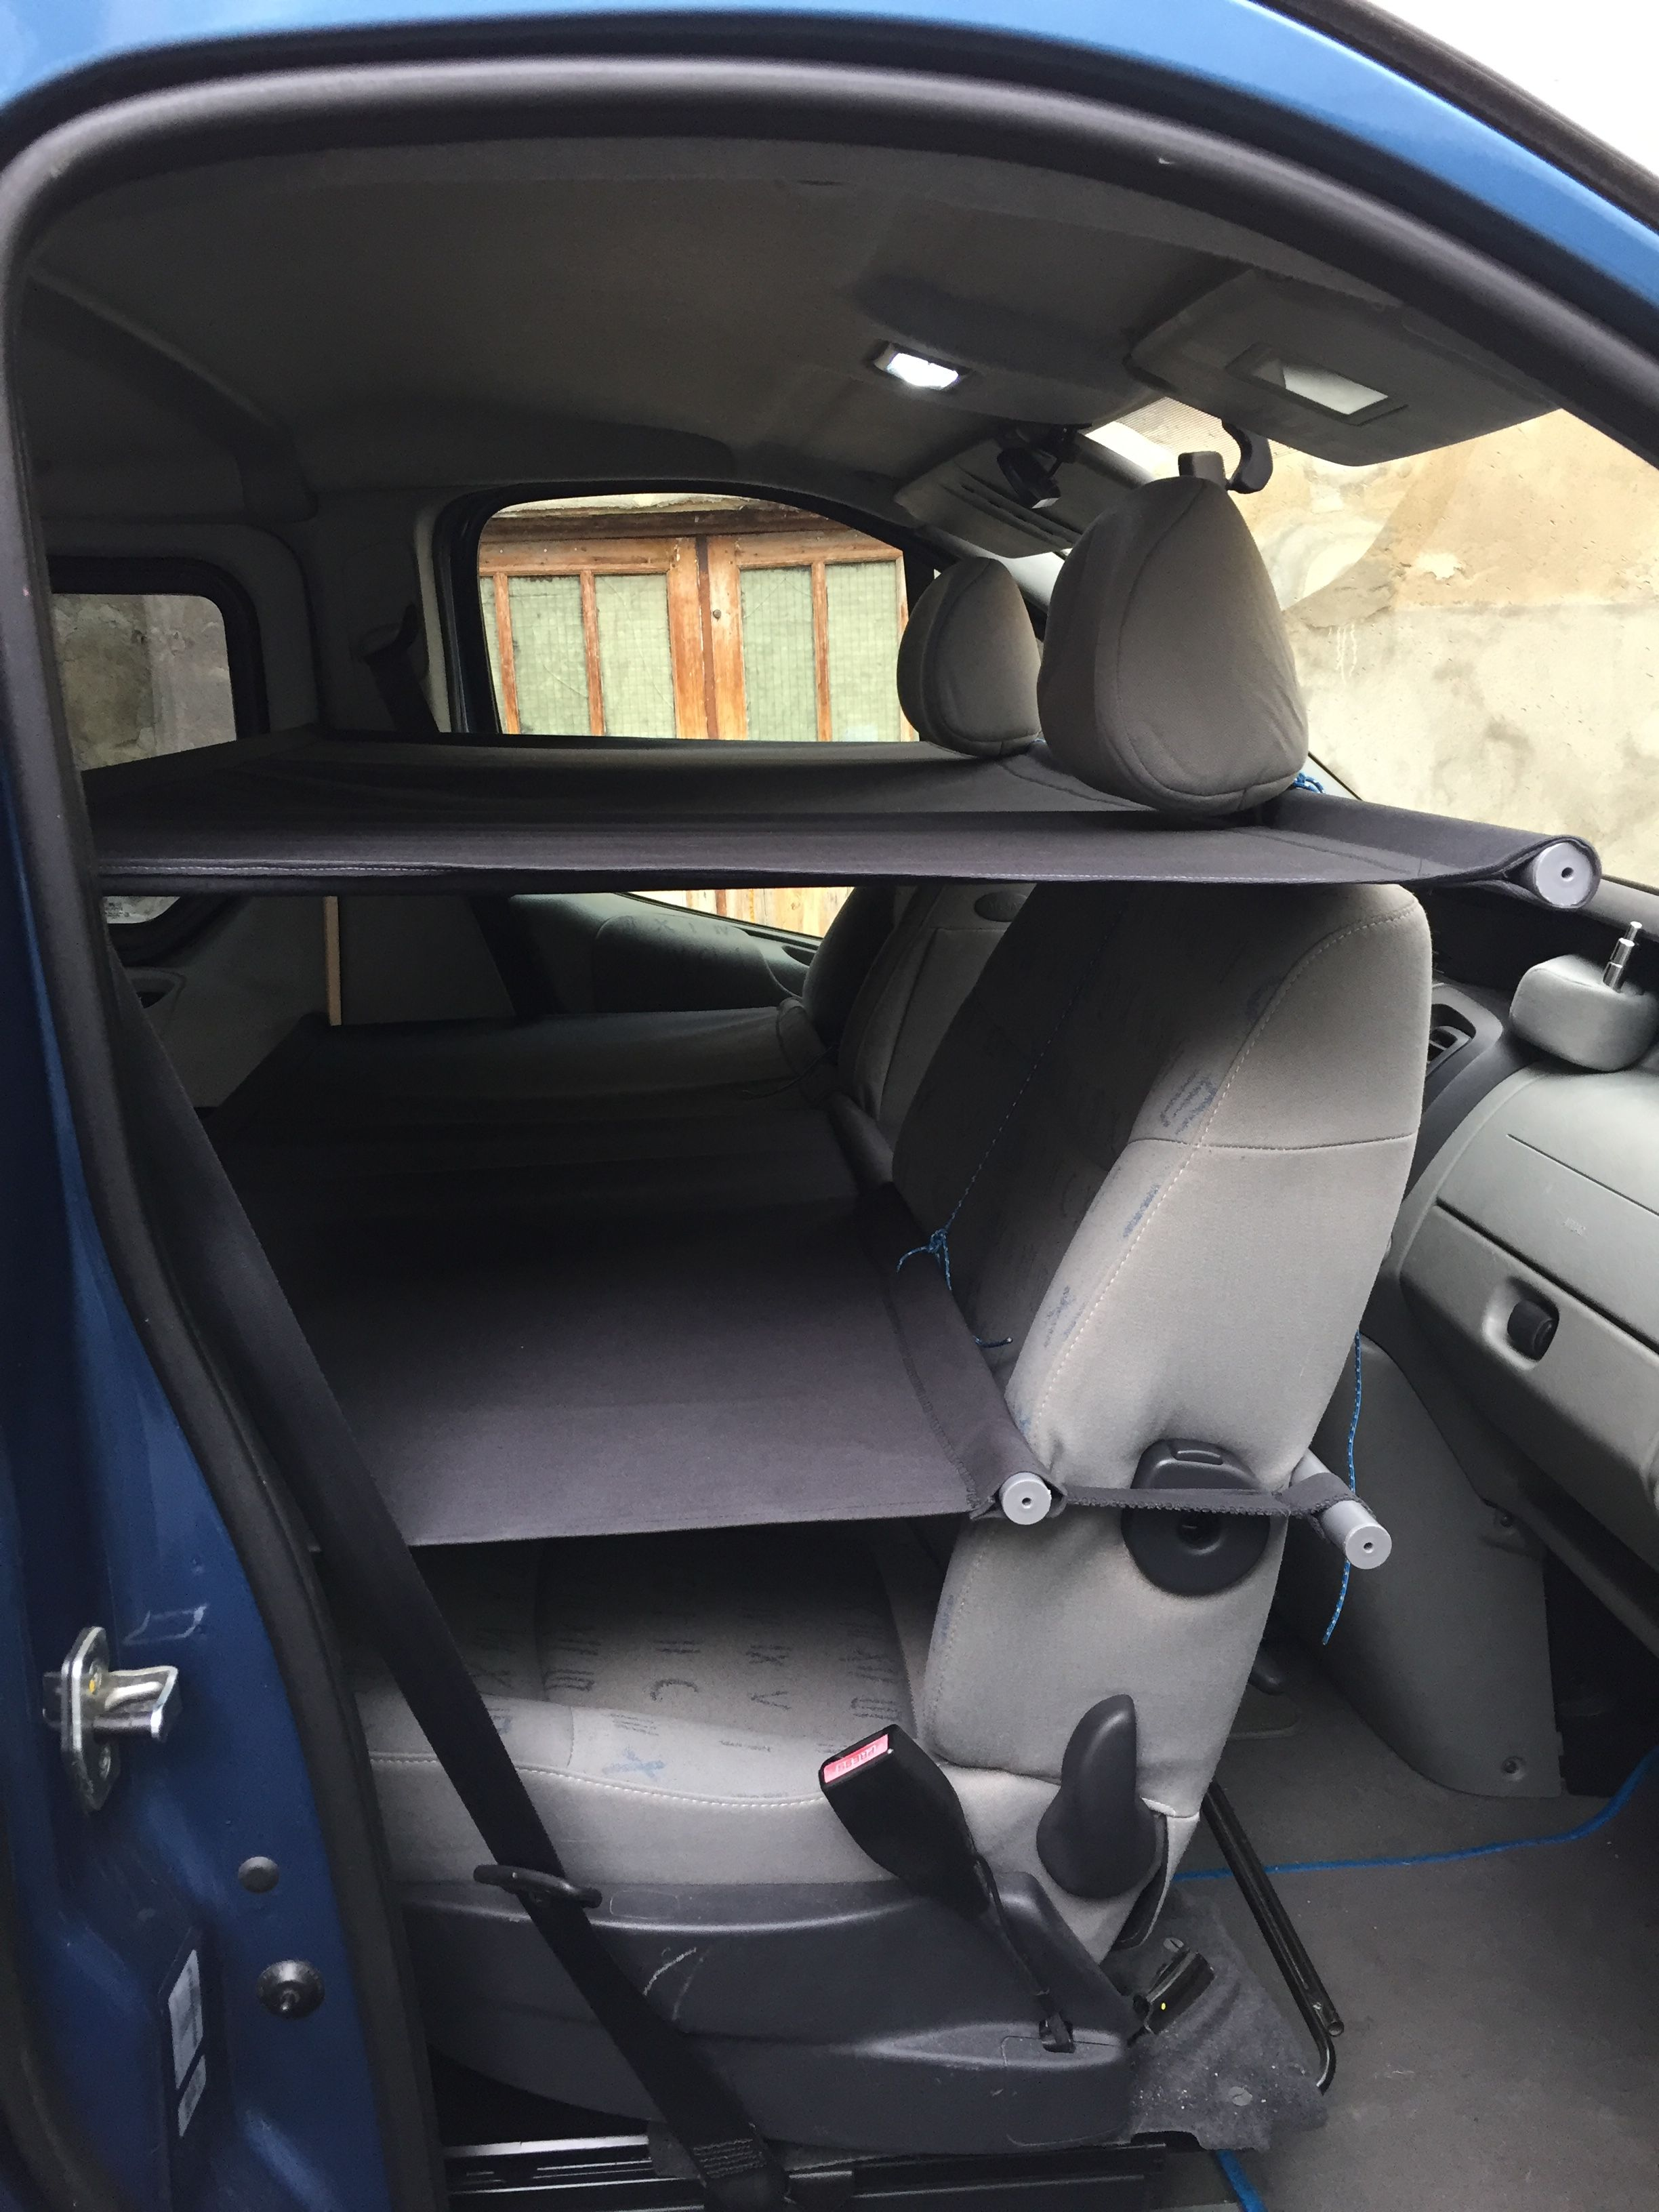 Diy Car Interior Design: Diy Cabbunk Renault Trafic Ikea Hacker